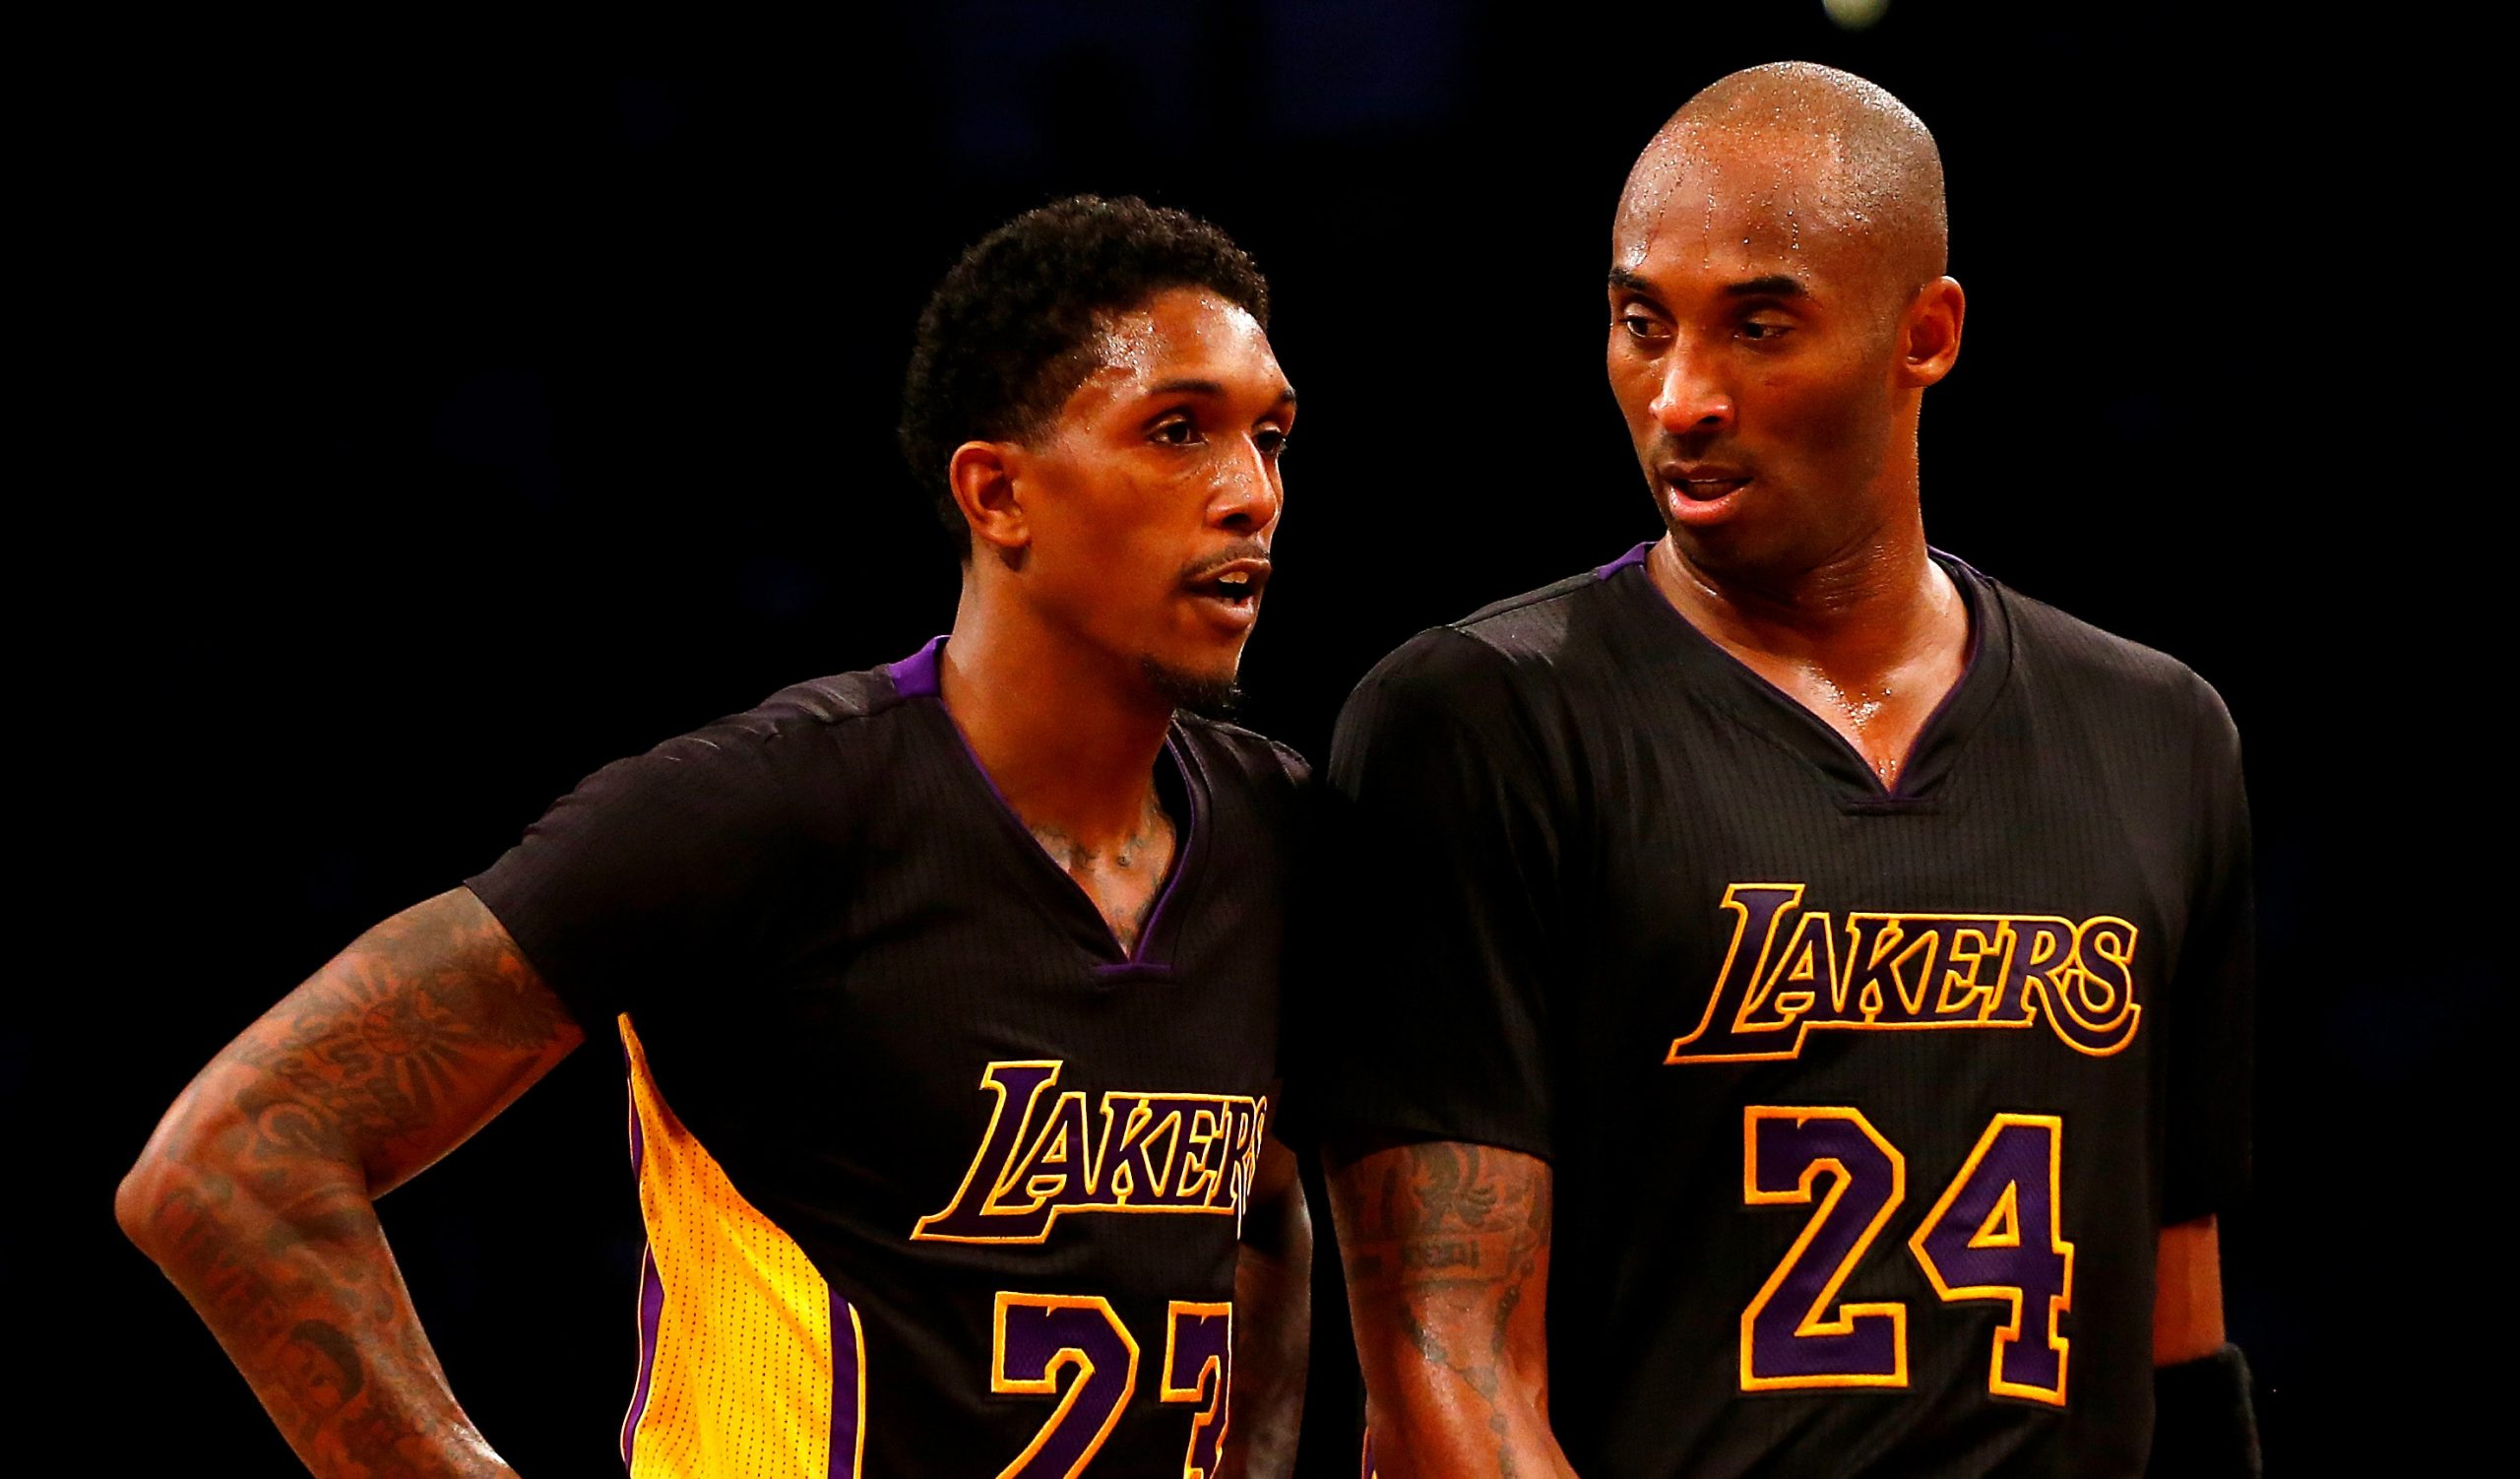 Lou Williams Releases New Single '24' as Open Letter to Kobe Bryant